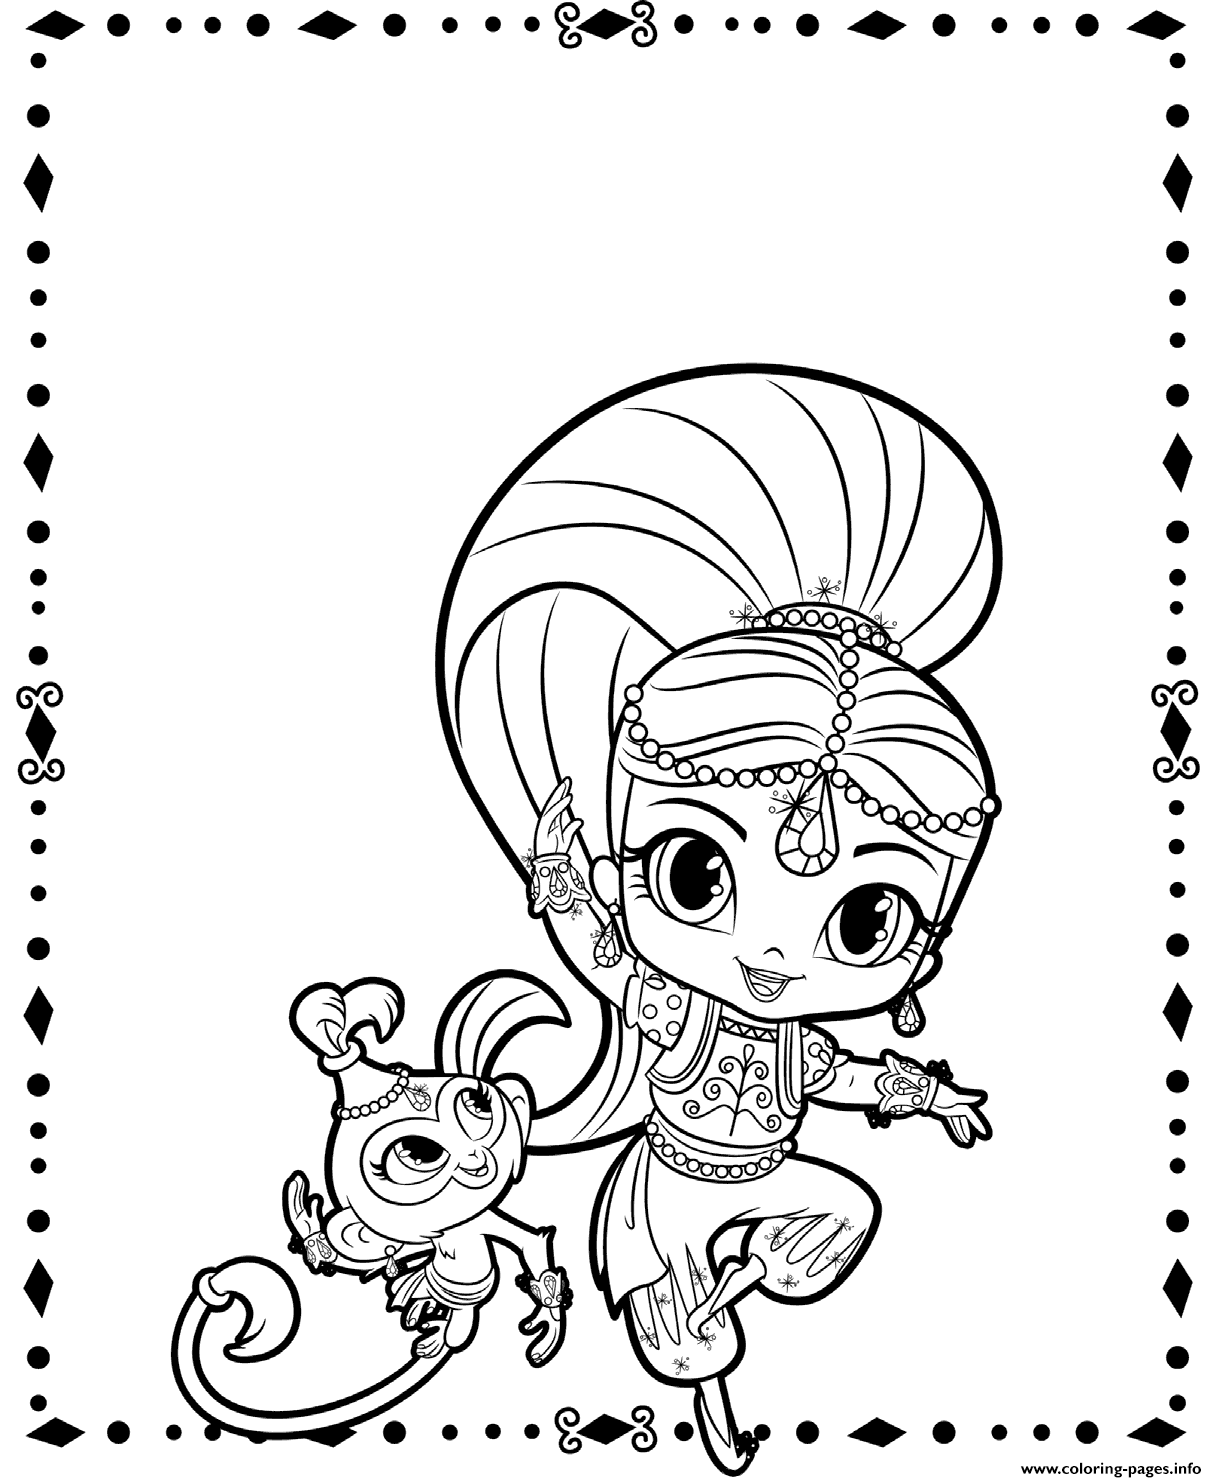 winnie the pooh coloring pages birthday free here